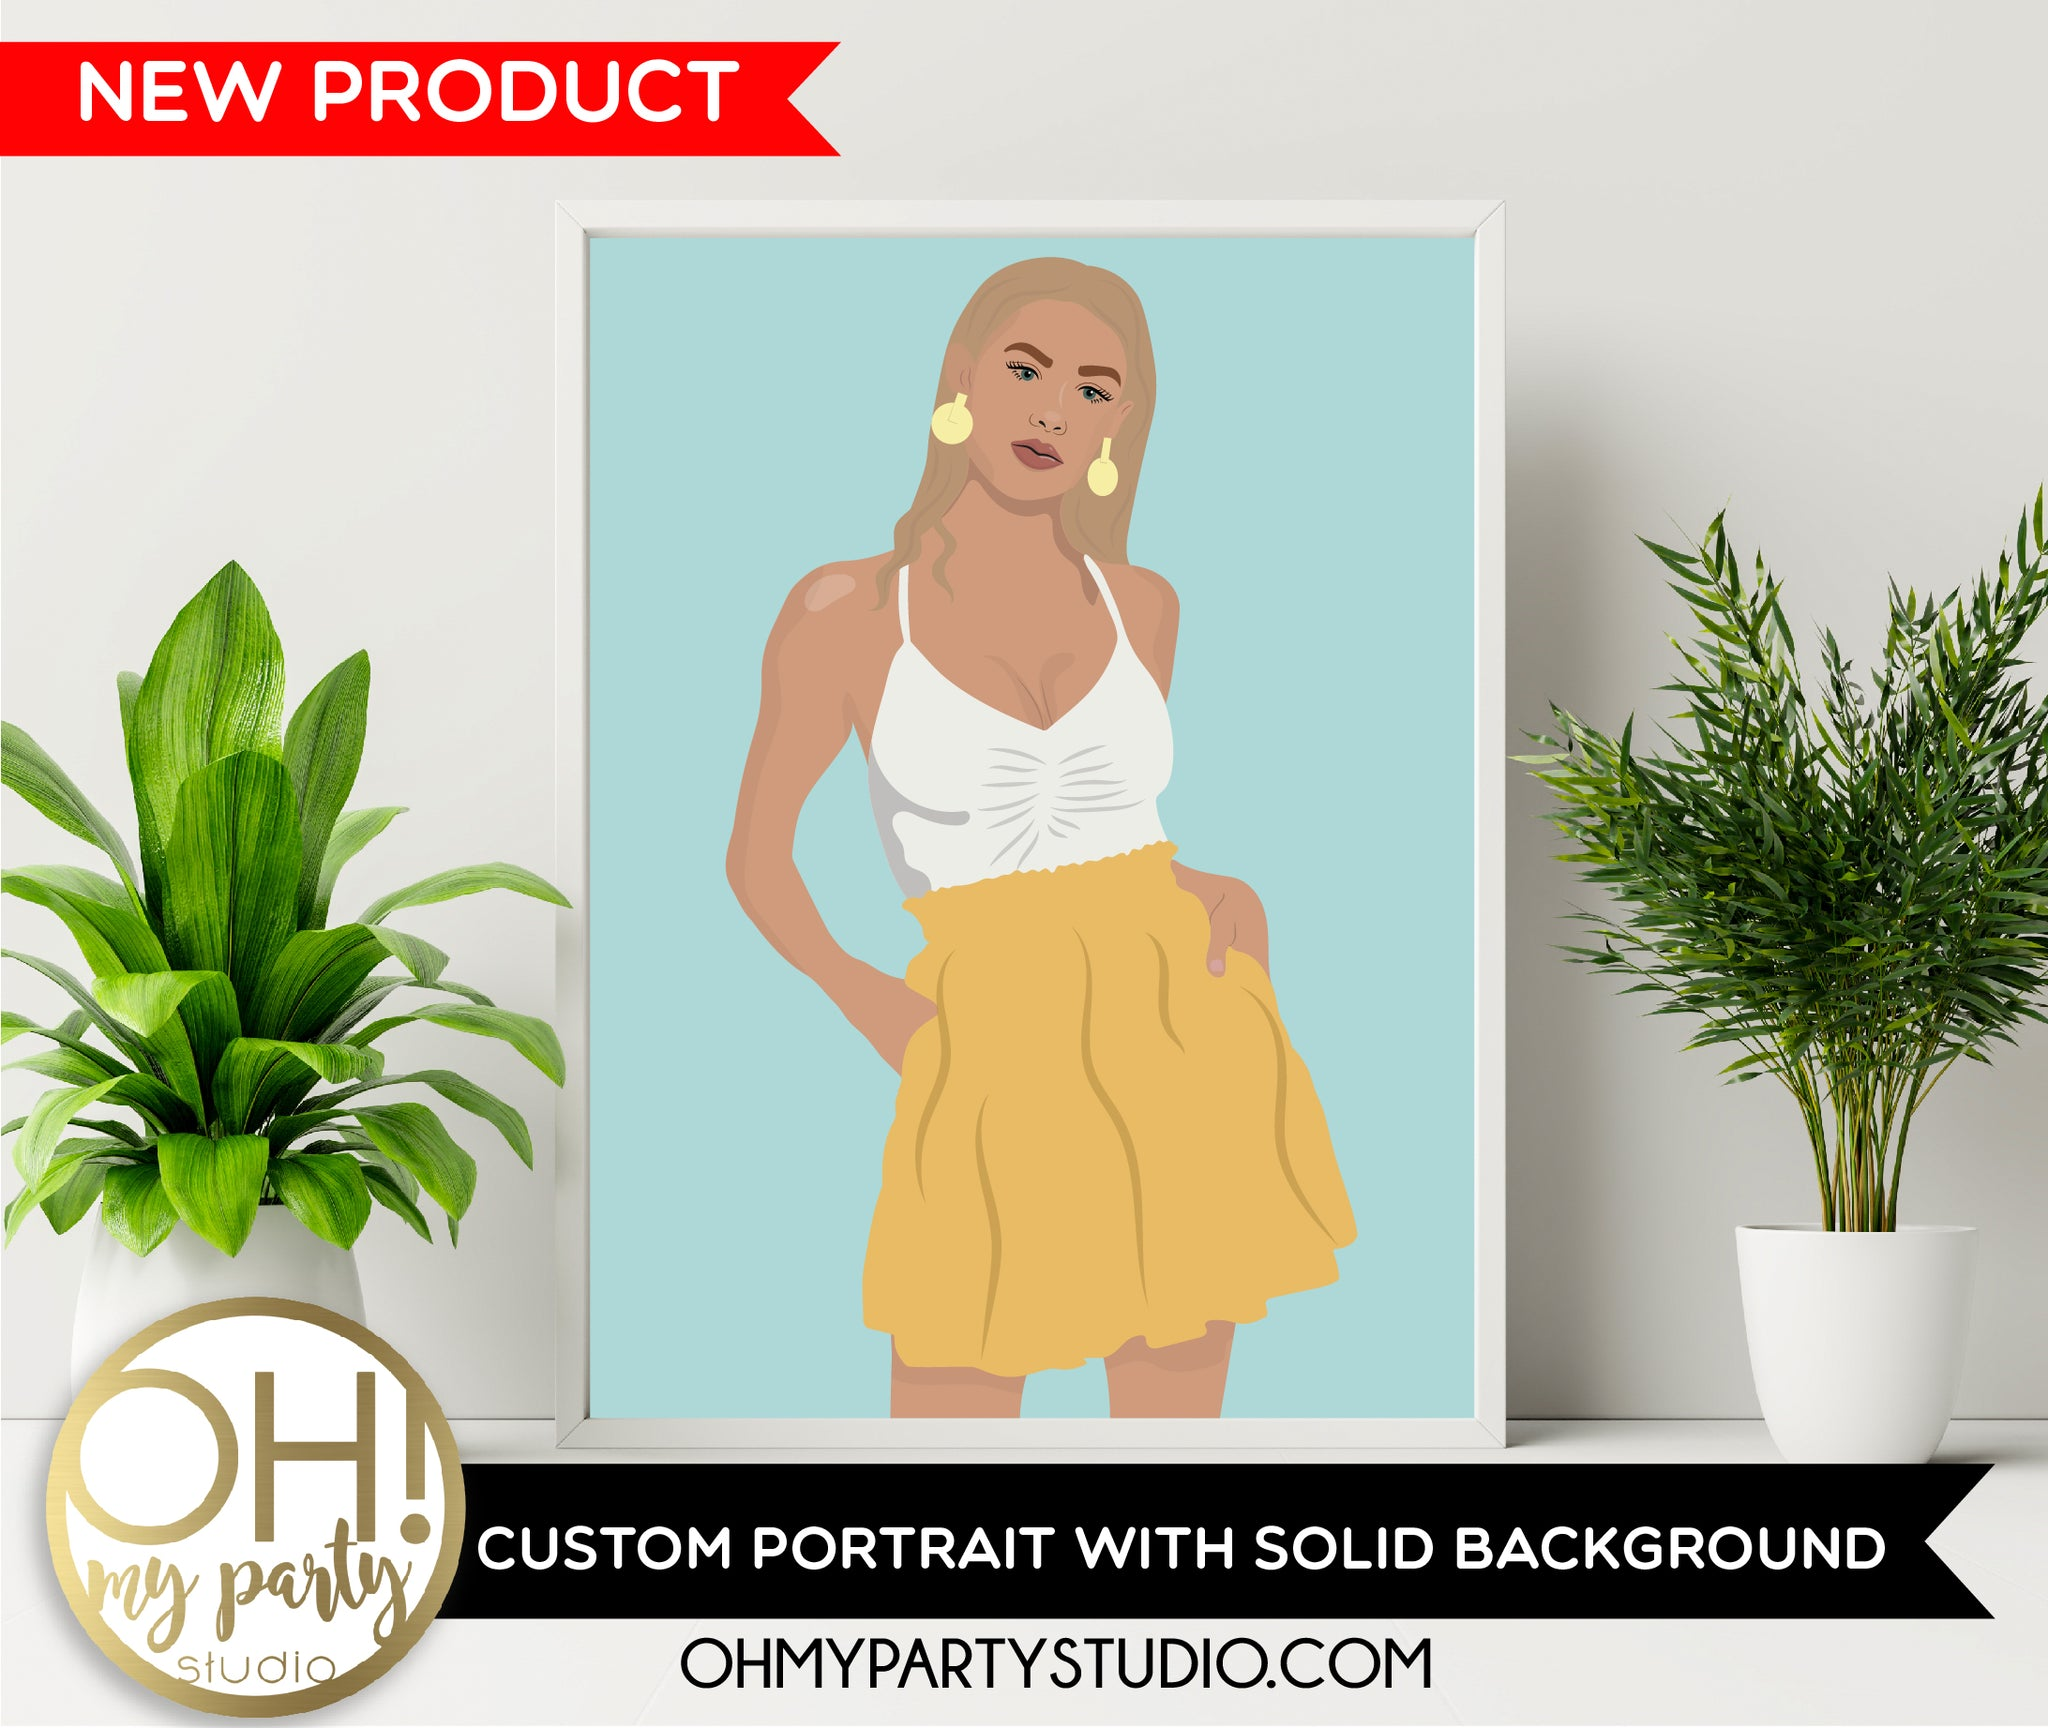 Custom portrait illustration, personalised portrait, photo portrait, digital portrait, custom drawing, couple portrait, Custom Portrait with Solid Background, PRINTABLE Art, Portrait Illustration, Digital Illustration, DIGITAL FILE, FASHION ILLUSTRATION, FASHION ILLUSTRATOR